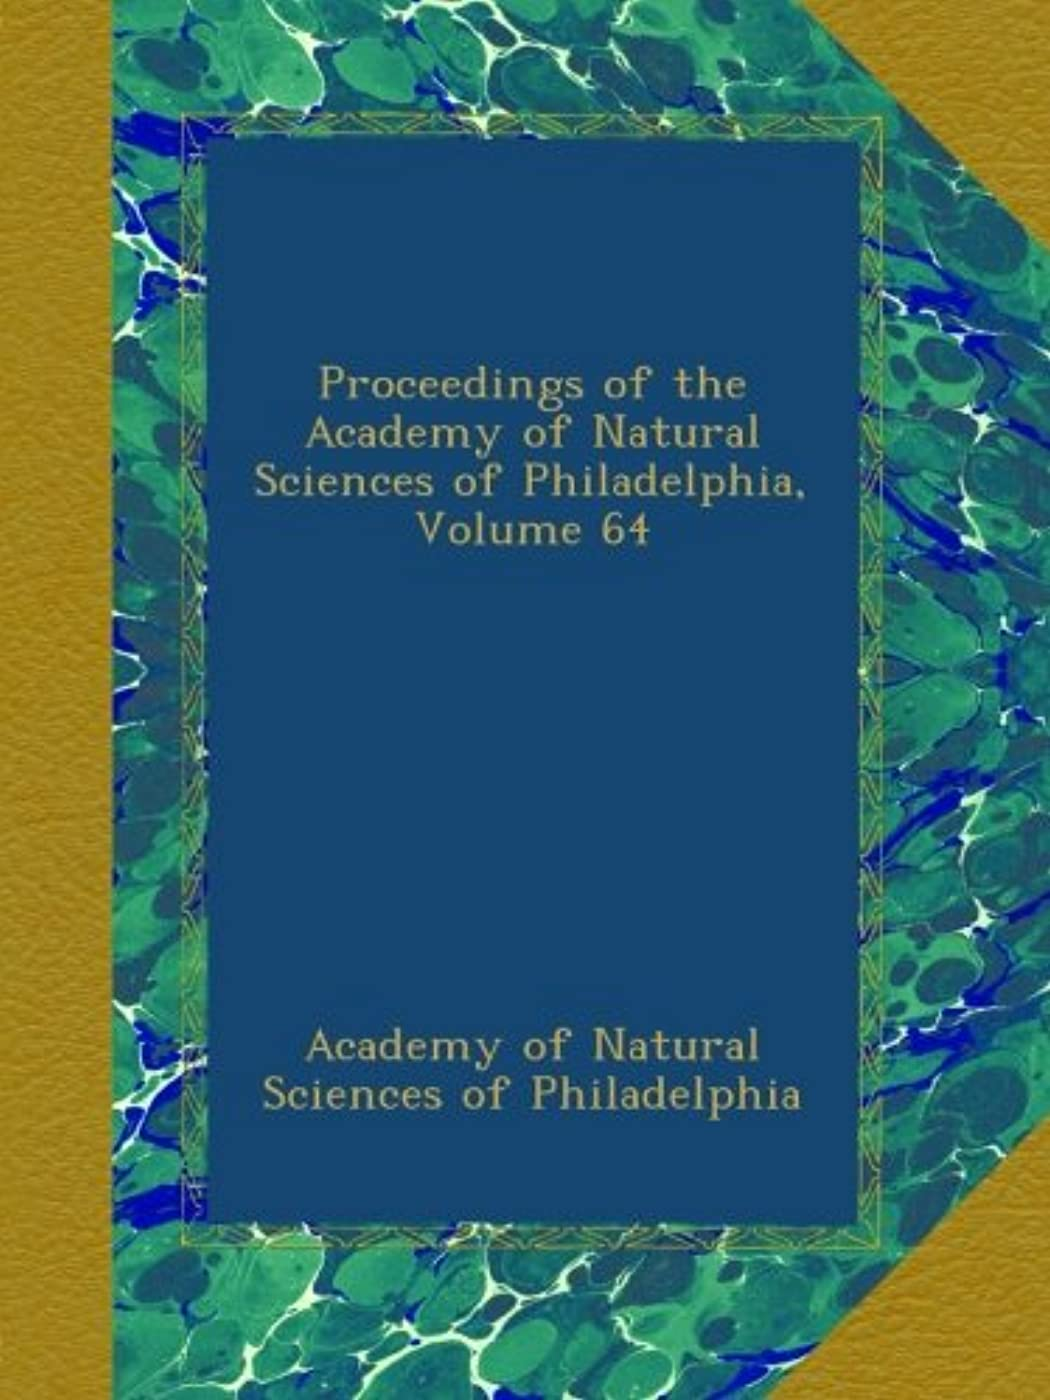 ブレイズ襟ピケProceedings of the Academy of Natural Sciences of Philadelphia, Volume 64